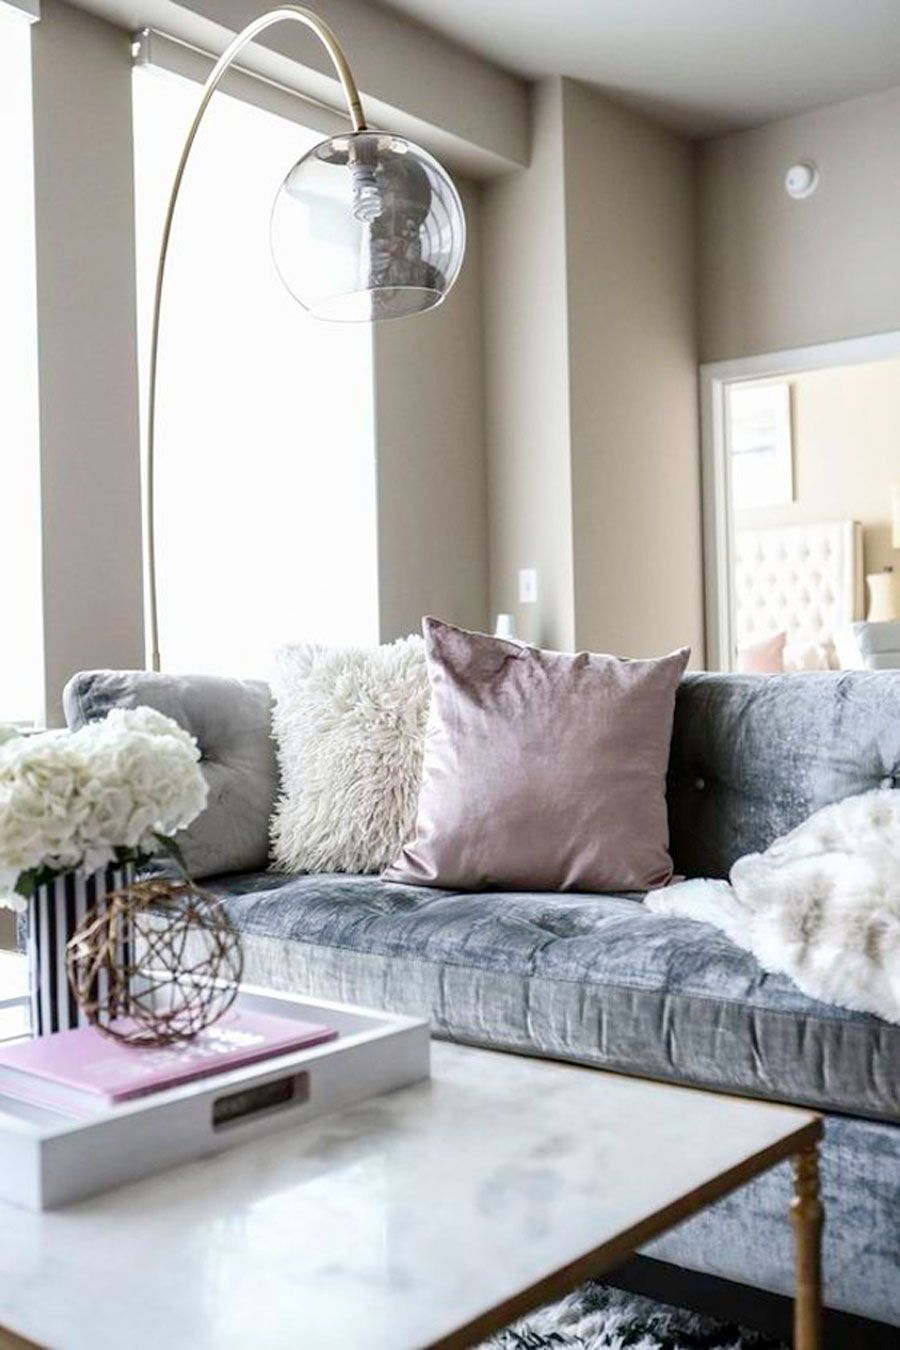 Get The Monochrome Trend With A Silver Floor Lamp! 2 silver floor lamp Get The Monochrome Trend With A Silver Floor Lamp! Get The Monochrome Trend With A Silver Floor Lamp 2